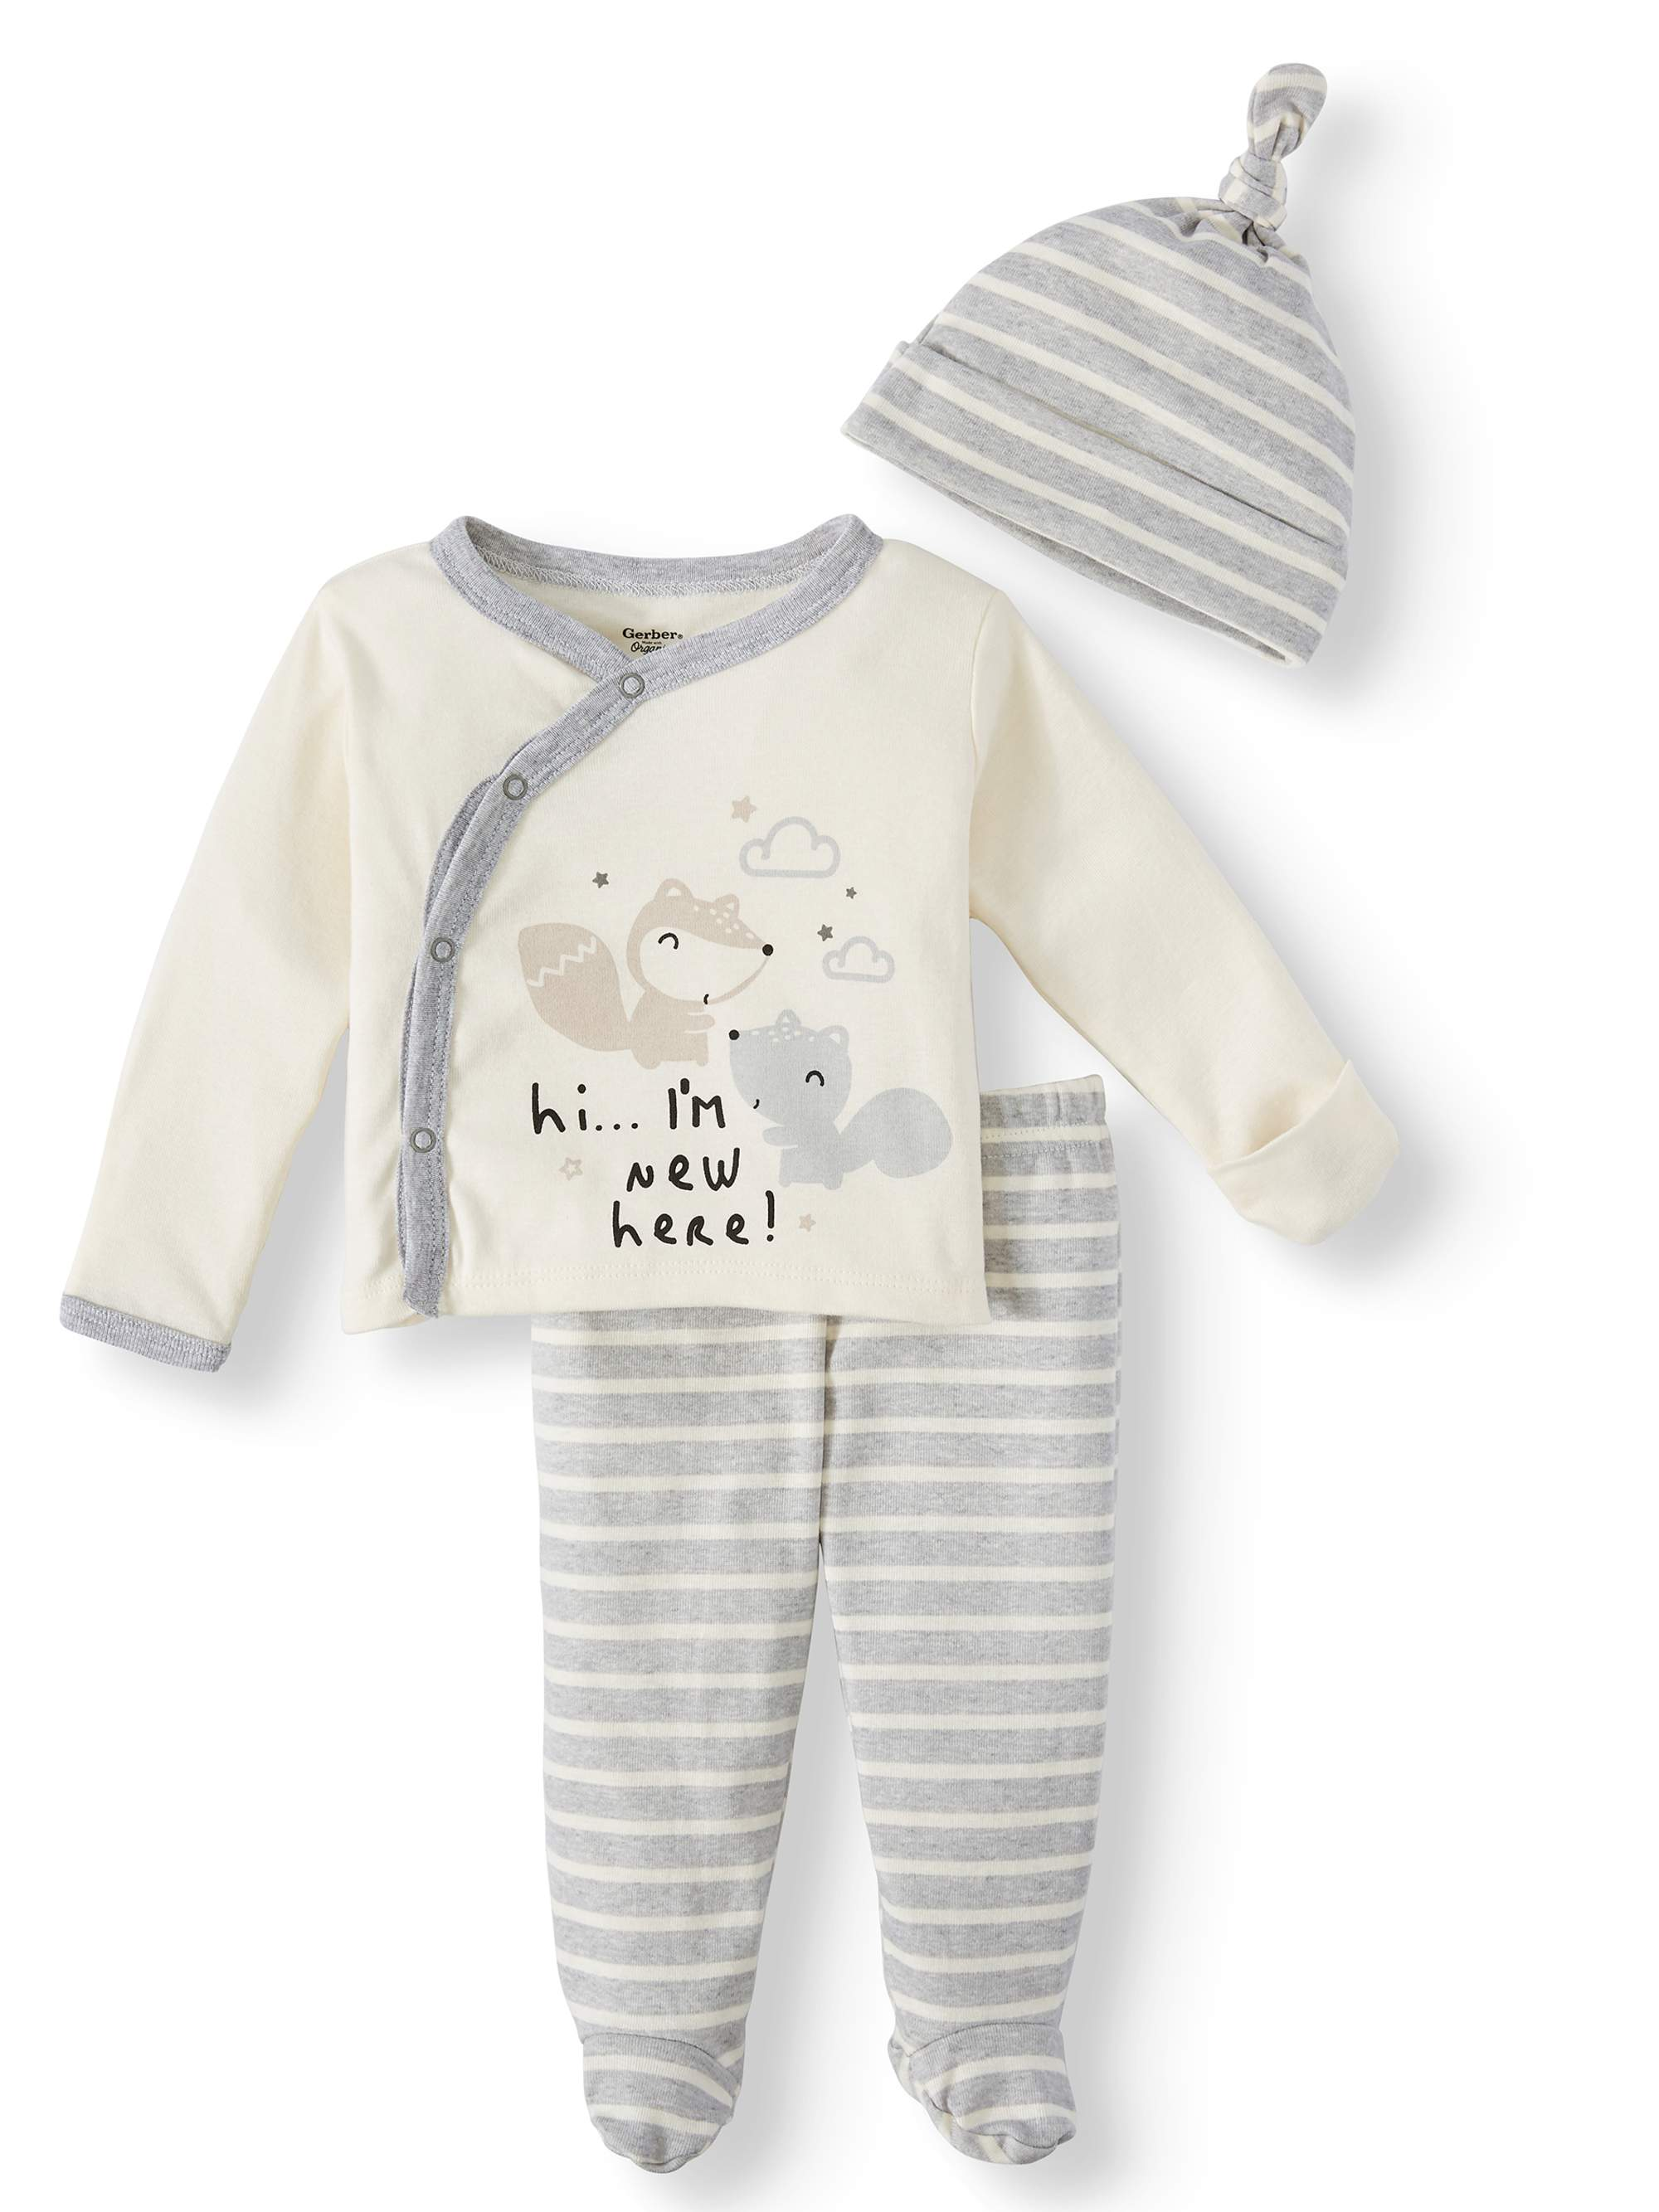 Unisex take me home outfit